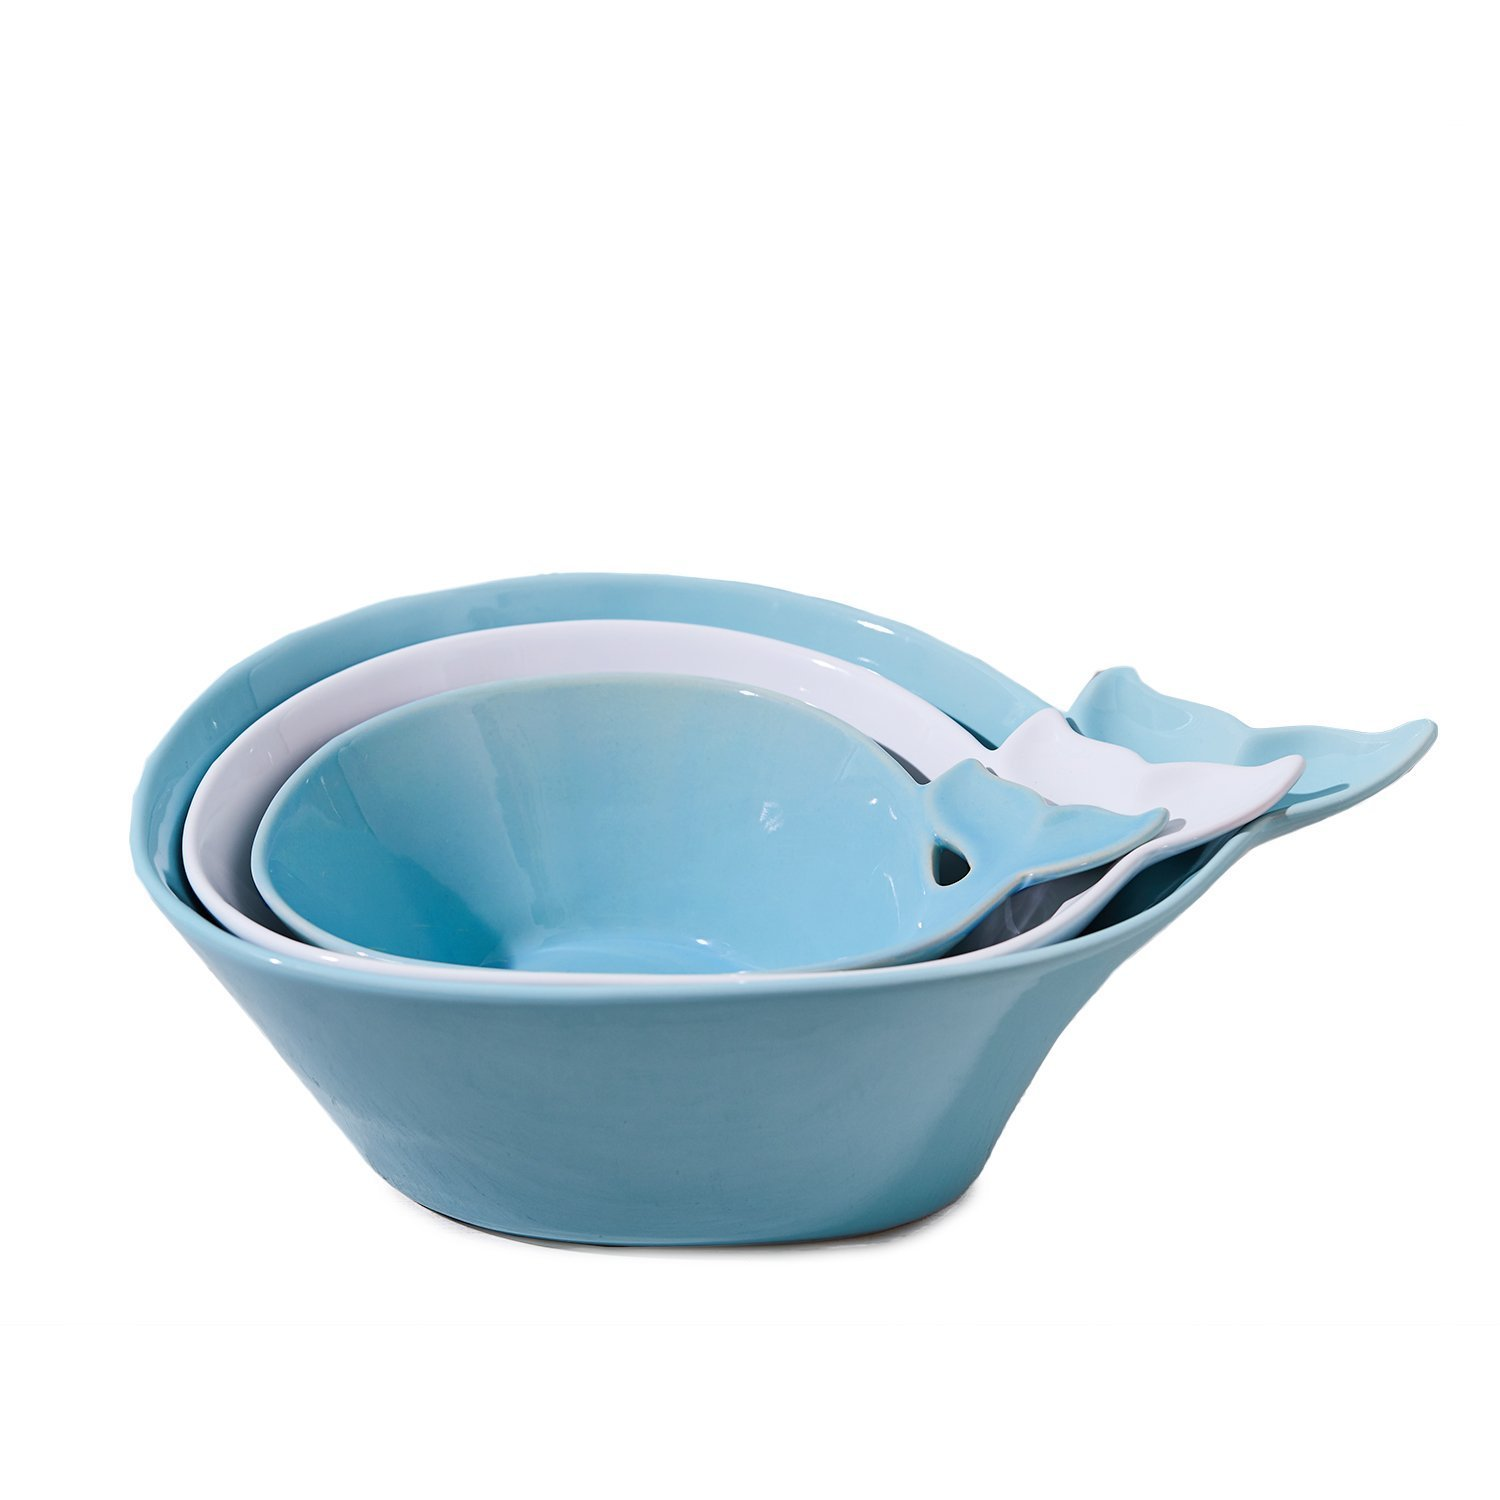 Two's Company 51482-EA Oh Whale! Bowls (Set of 3), Blue